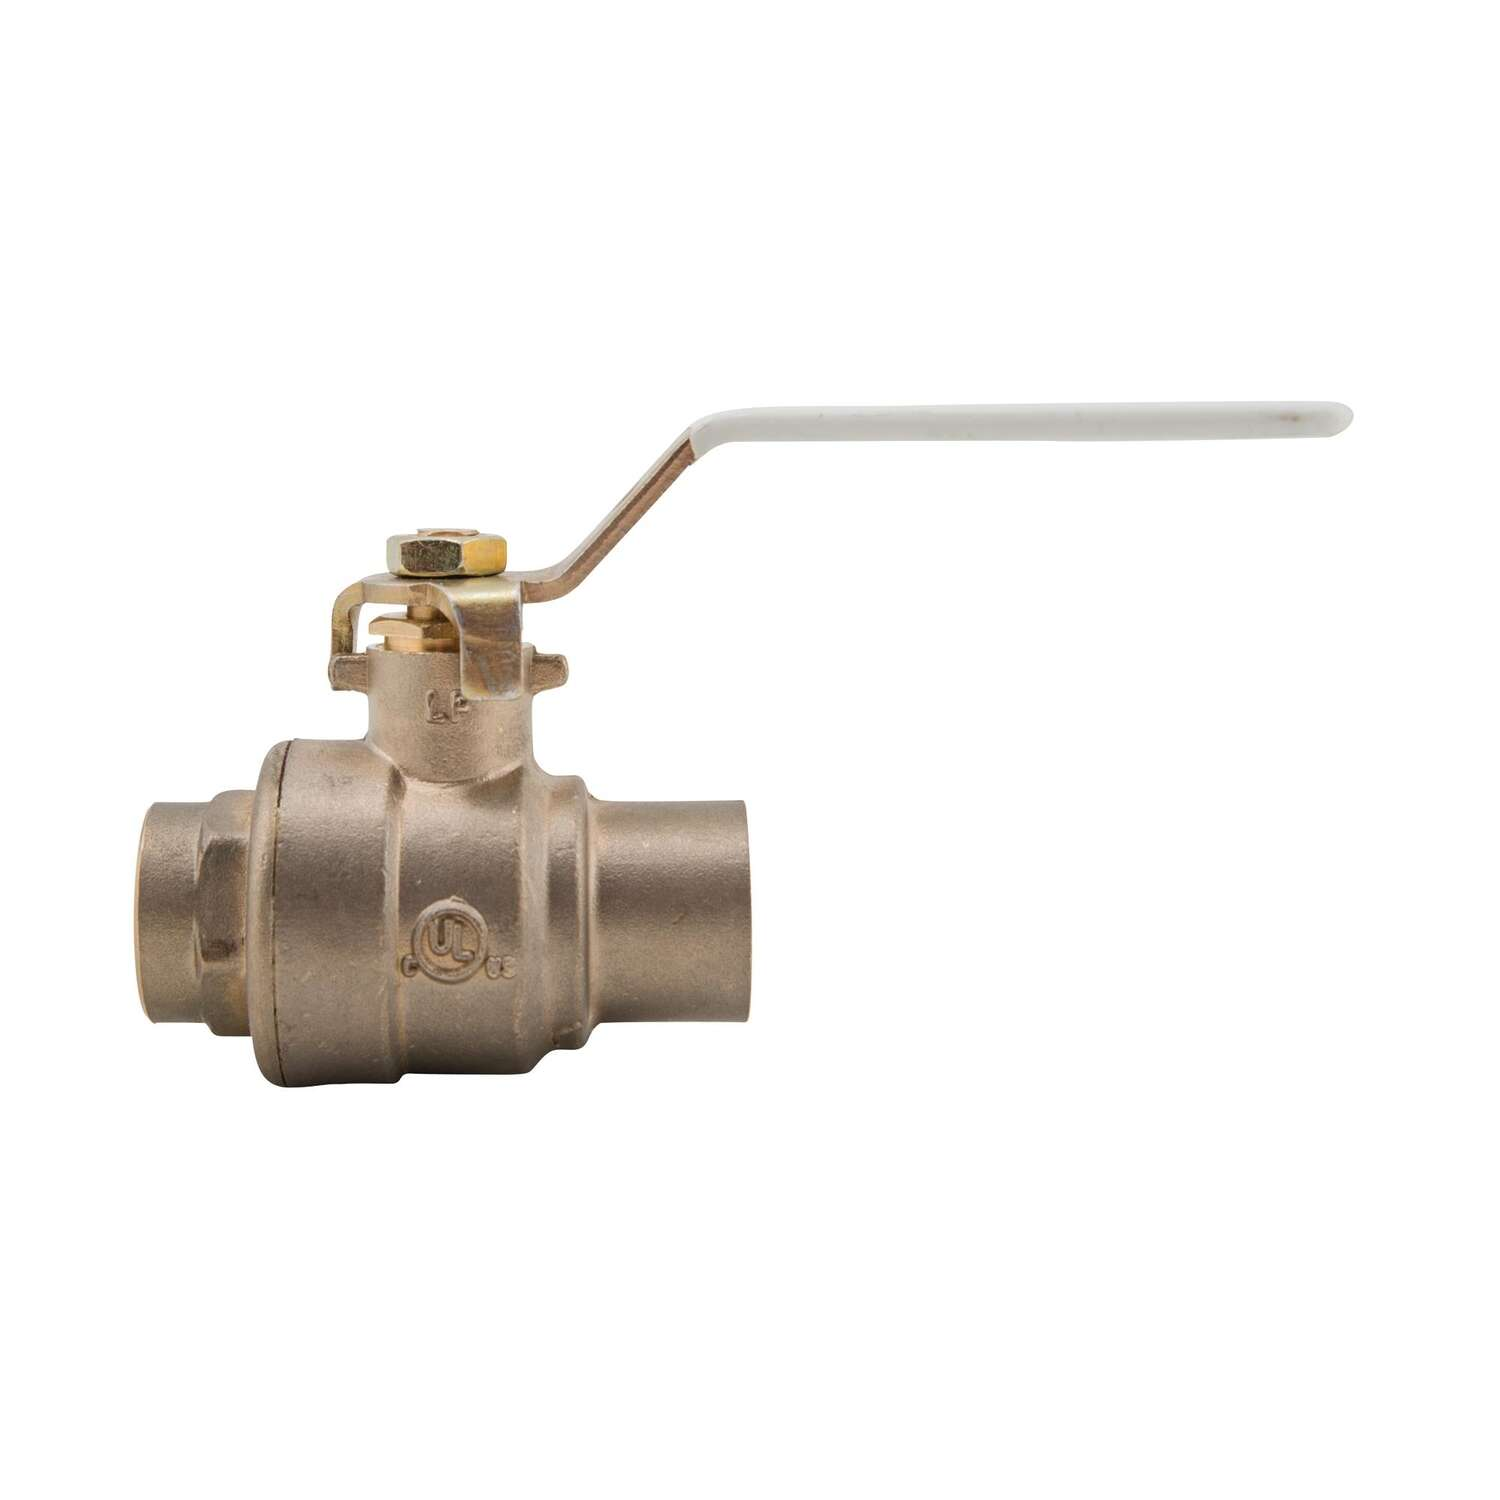 Watts  3/4 in. Brass  Sweat  Ball Valve  Full Port